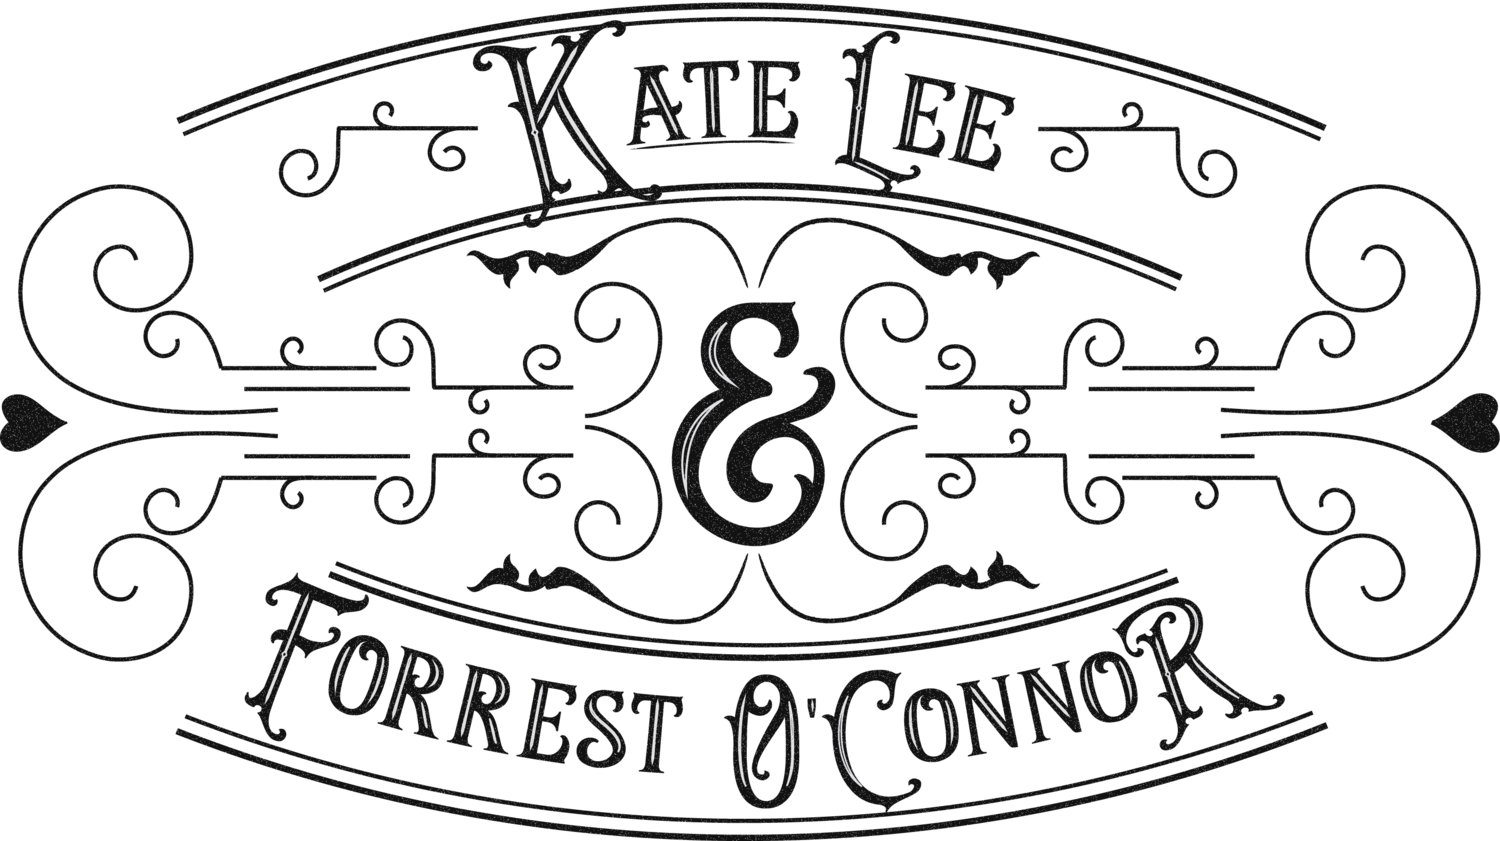 Kate Lee & Forrest O'Connor